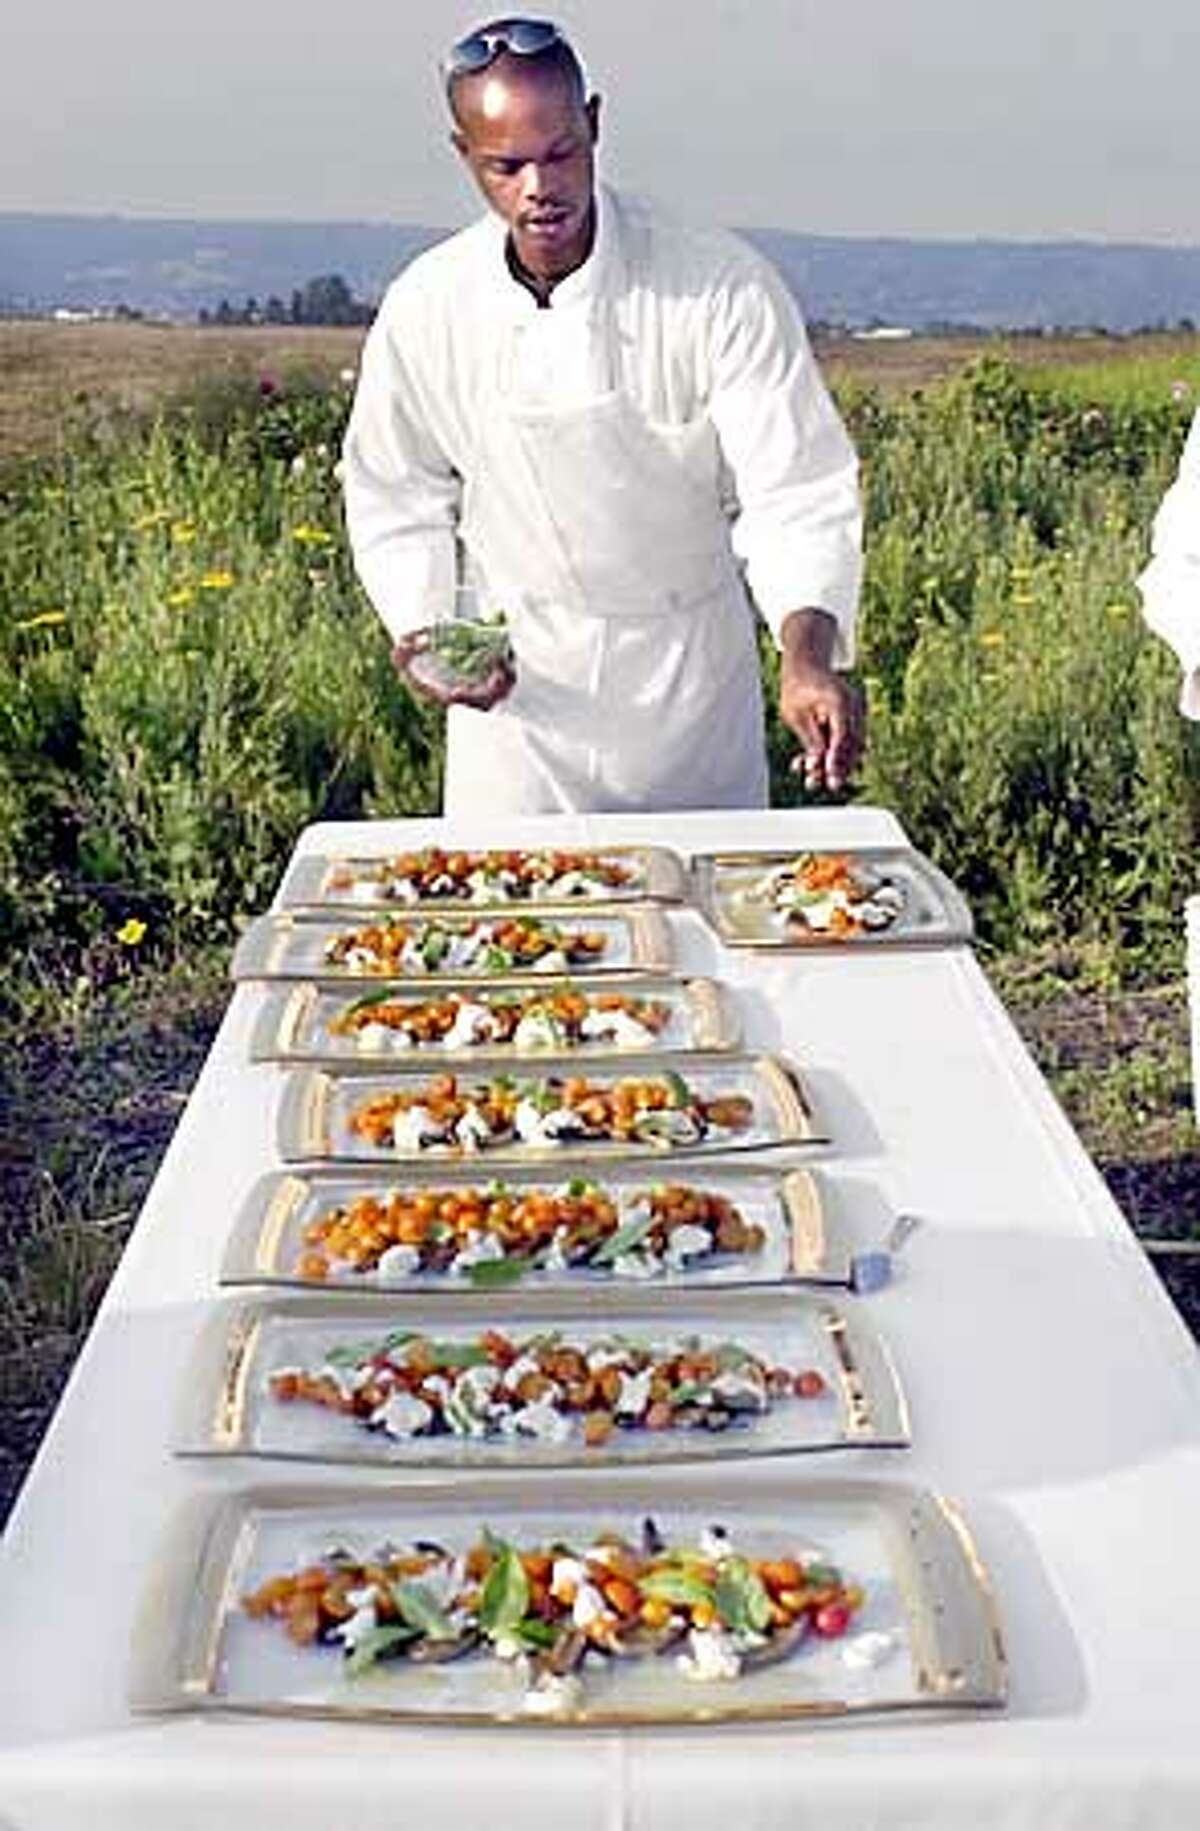 Guest Chef Damani Thomas of Oswald restaurant in Santa Cruz puts the finishing touch on the grilled eggplant with homemade ricotta cheese and cherry tomatoes for the Outstanding in the Field farm dinner and tour at High Ground Farm in Watsonville which featured a six course dinner and farm tour. Photo by Gina Gayle/The SF Chronicle.